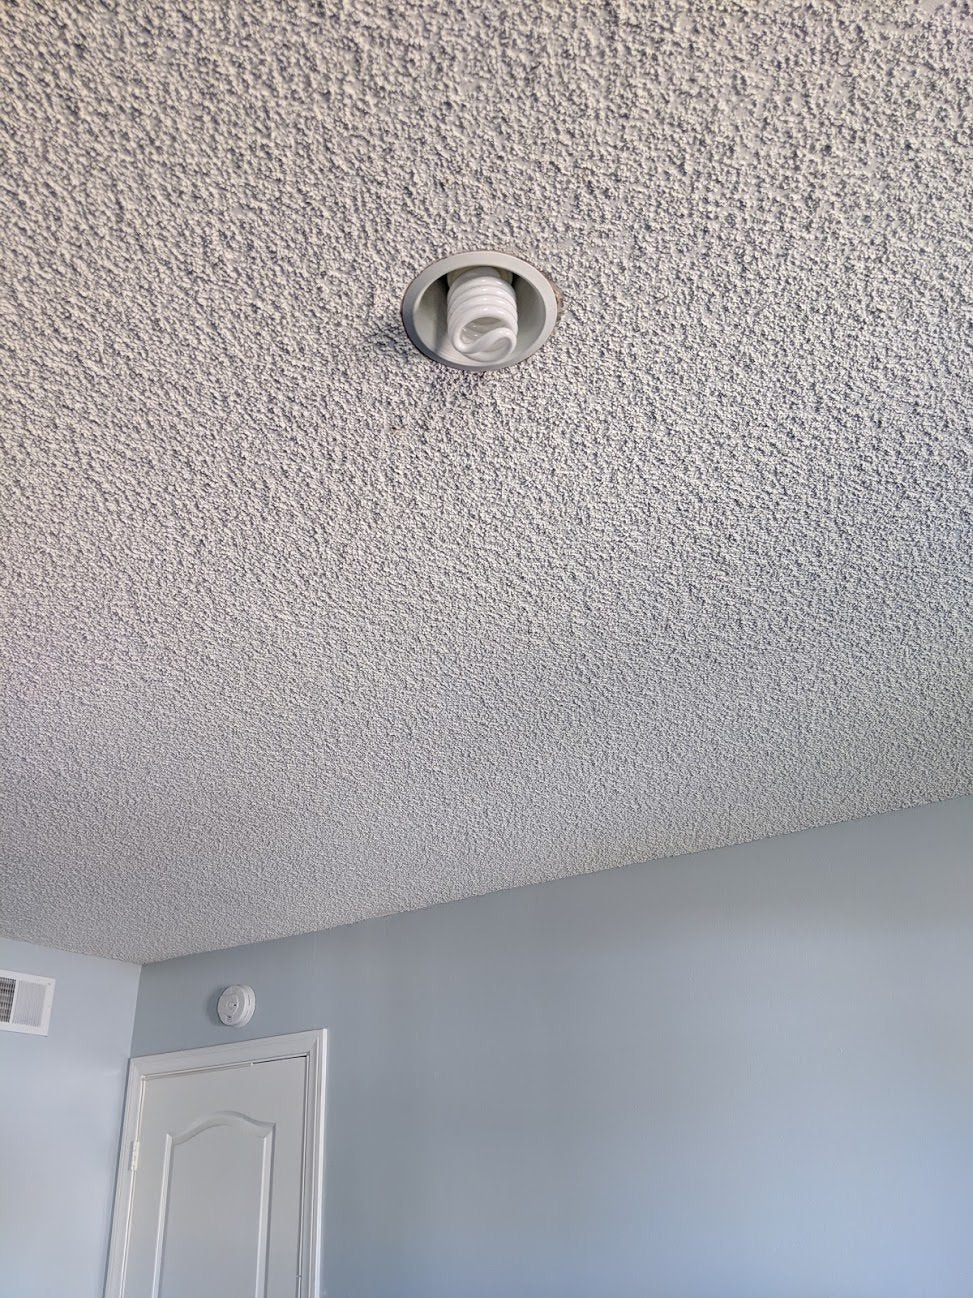 what can i do to cover this ugly light fixture